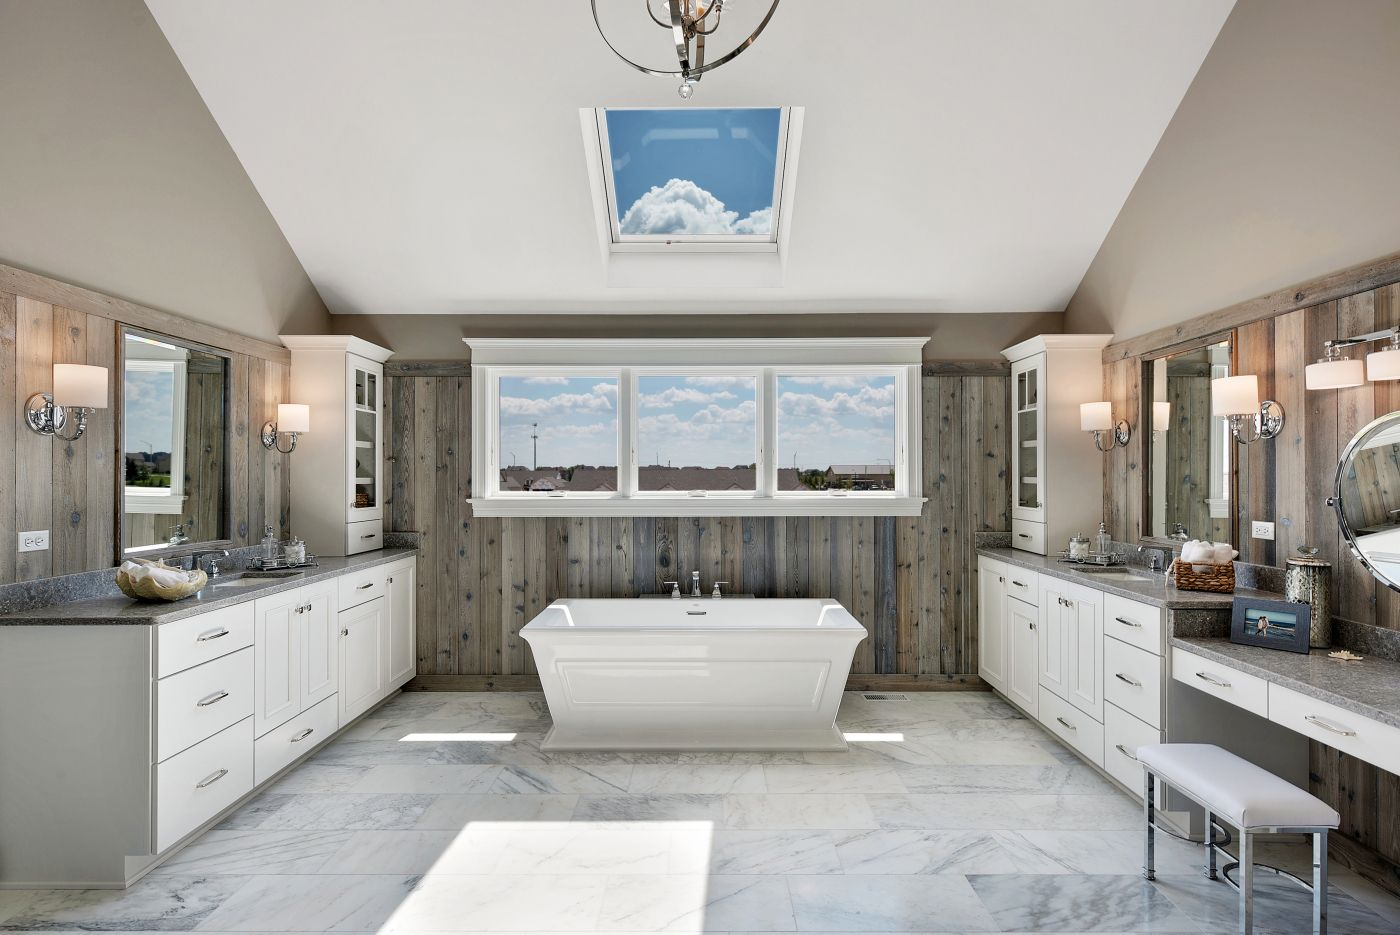 Latrine Love 10 Inspiring Bathroom Design Ideas Inexpensive Bathroom Remodel Bathroom Design Luxury Bathroom Design Inspiration